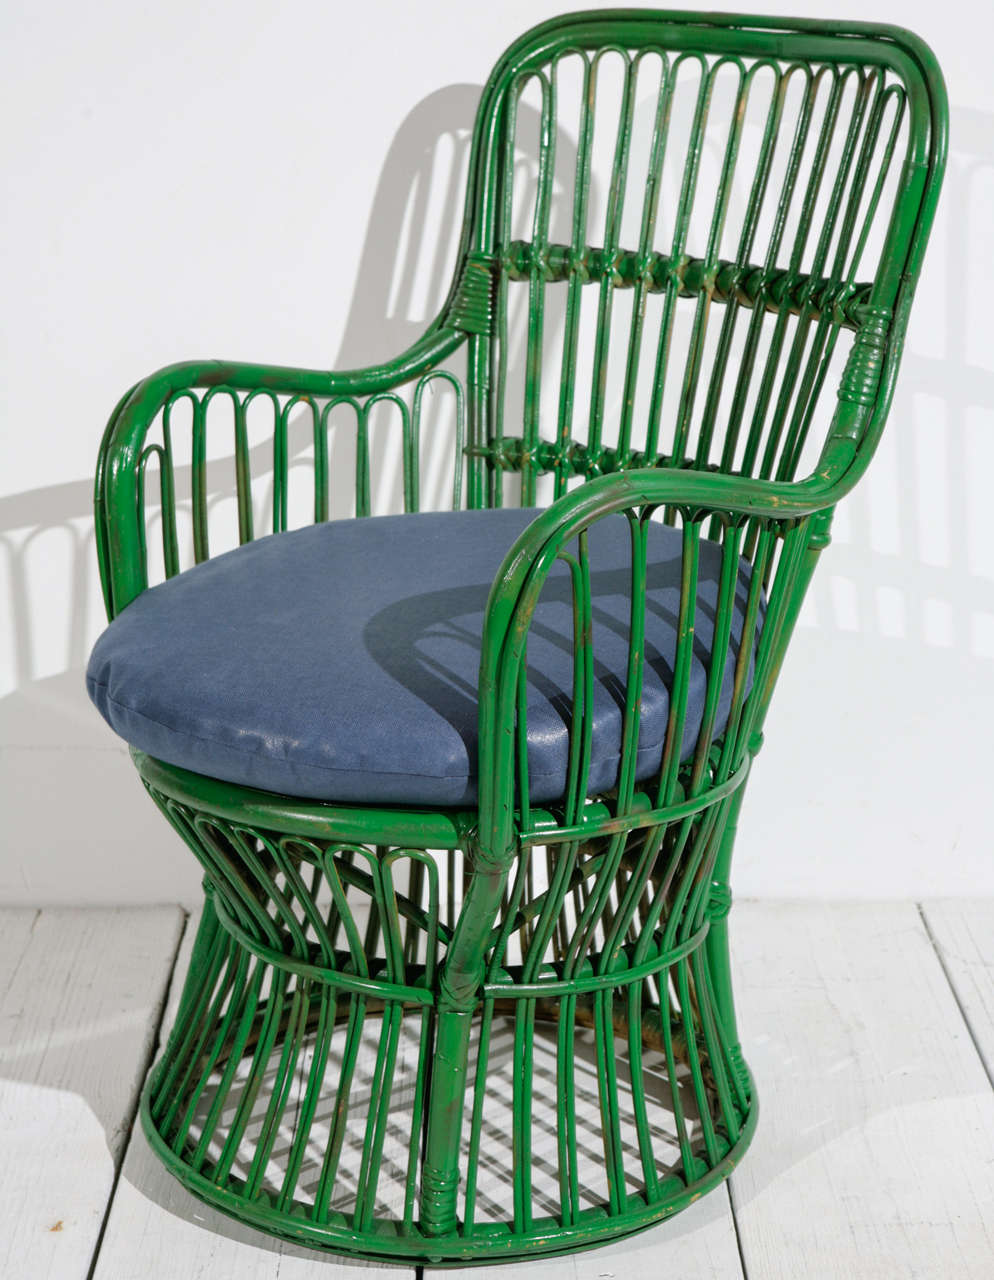 Green Wicker Armchair in the style of Gio Ponti and Lio Carminati | Small In Good Condition In Los Angeles, CA